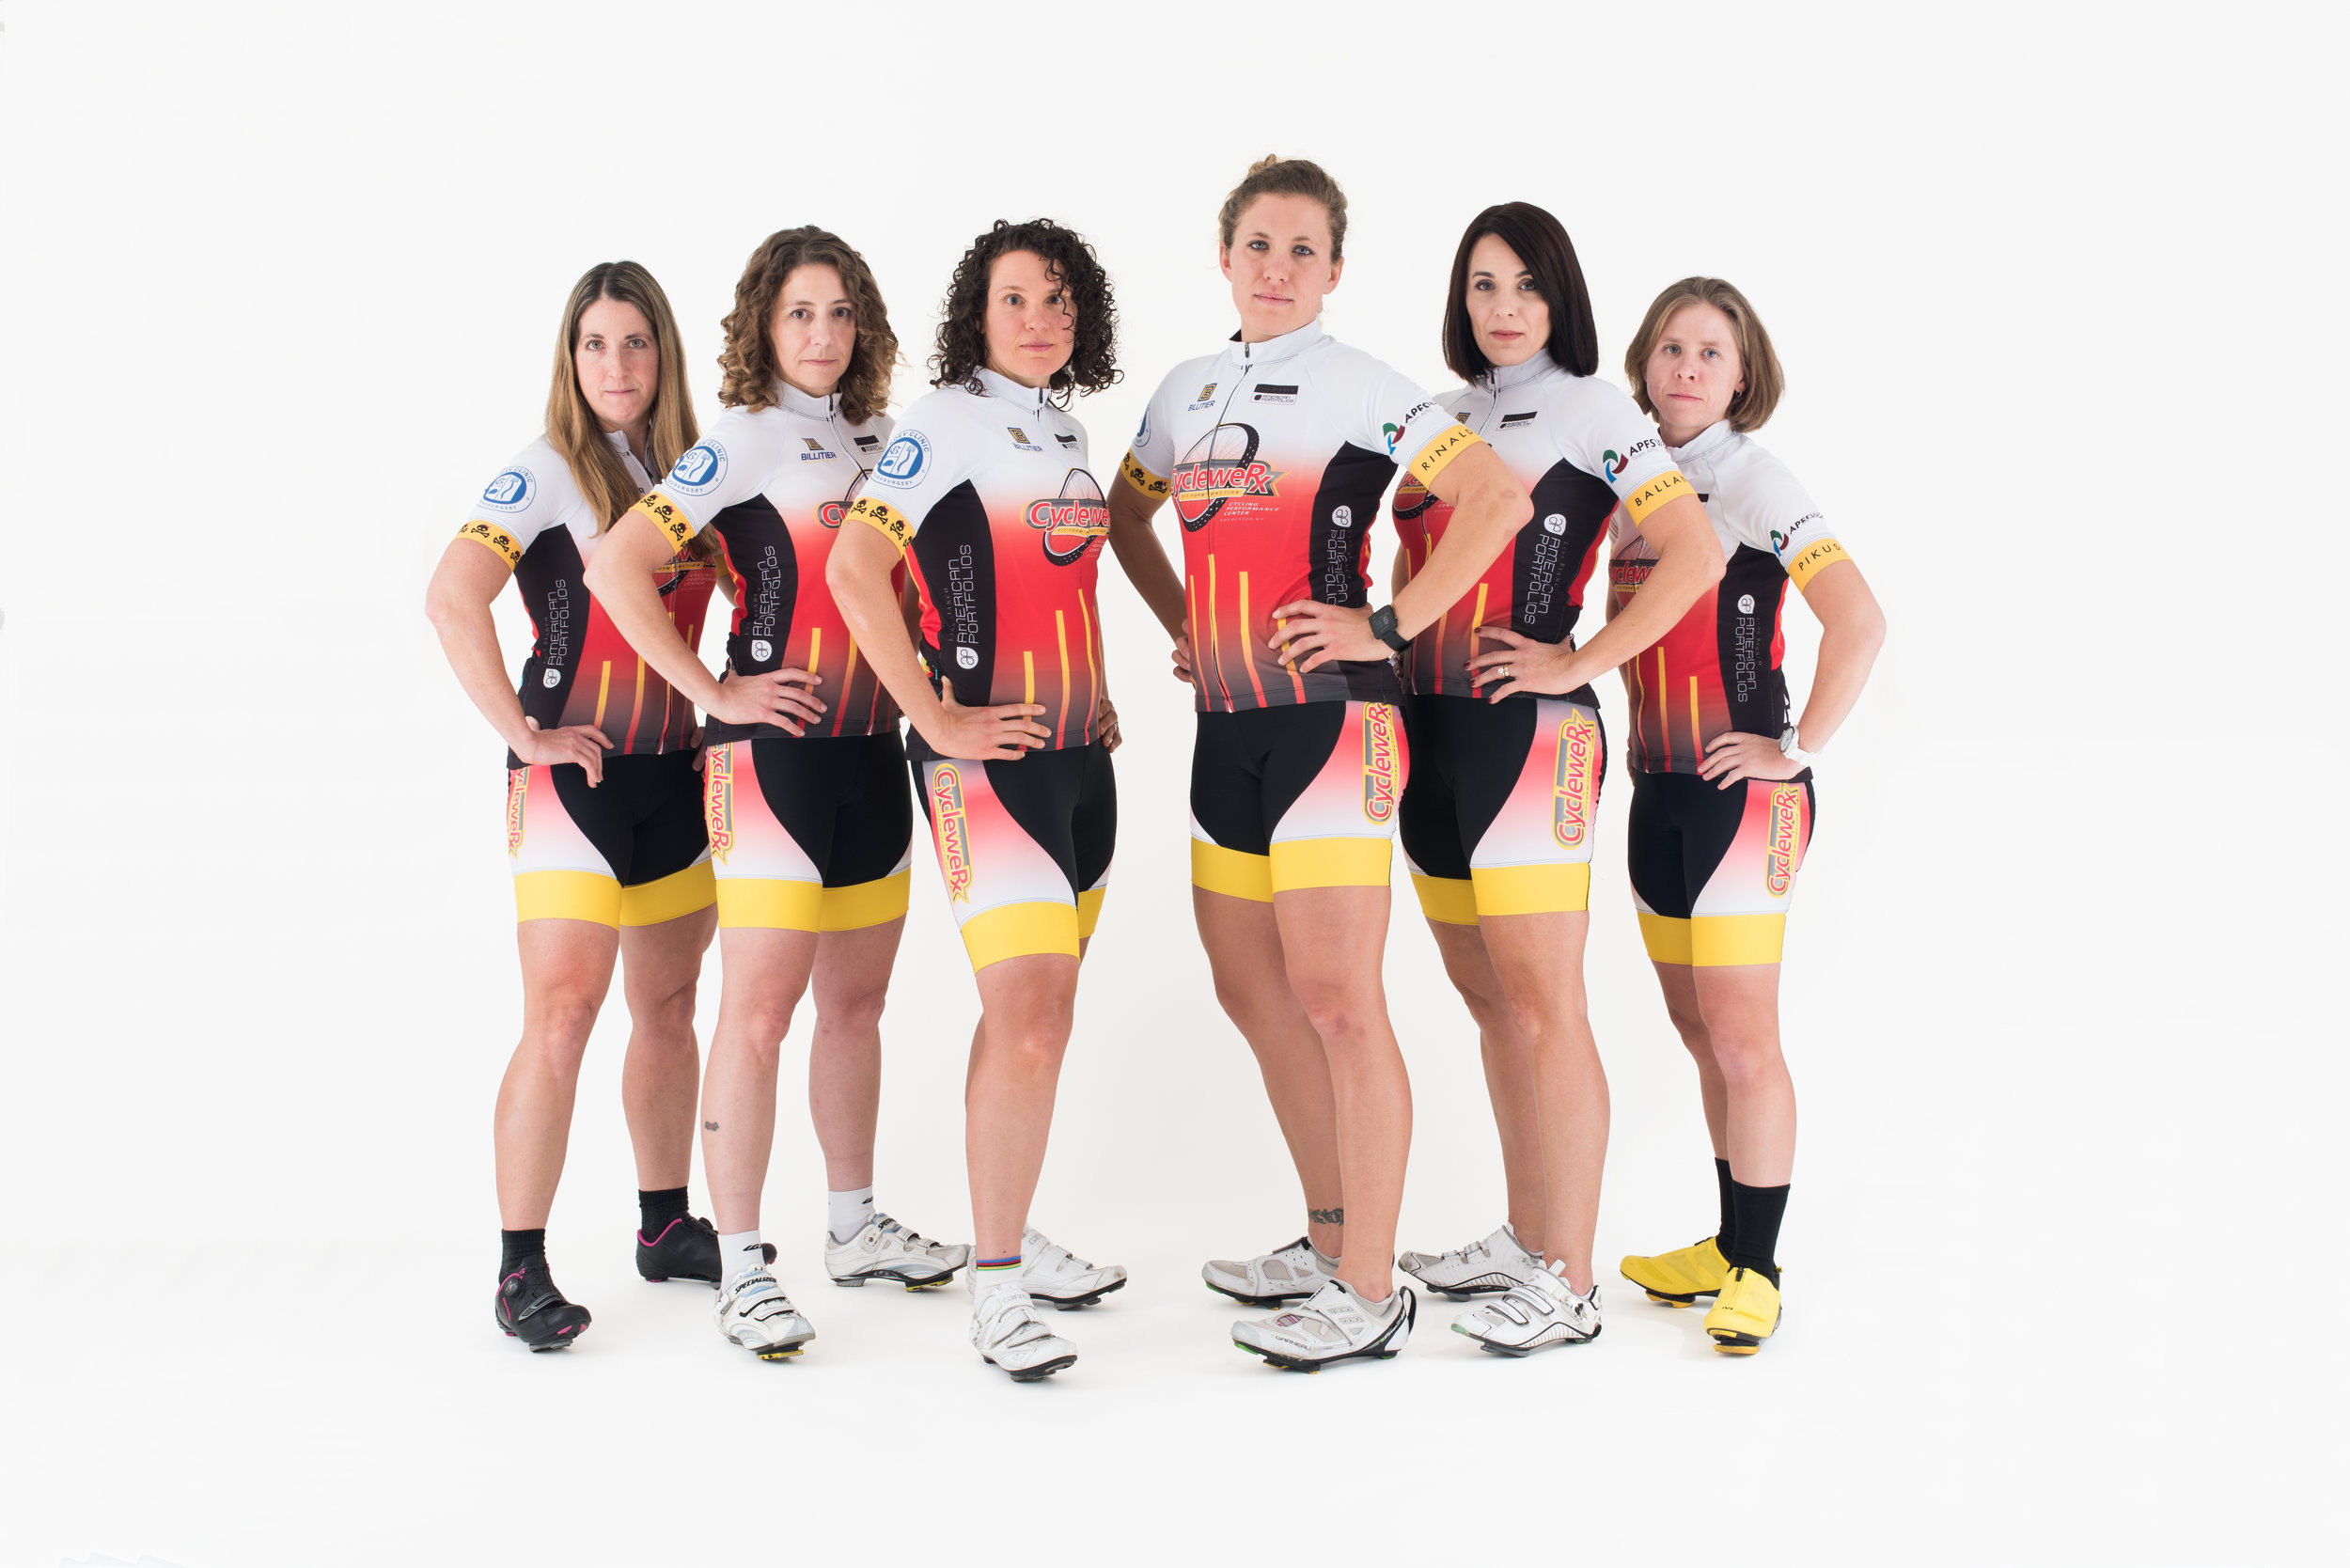 The CycleweRx of Rochester women's racing team poses for portraits in the RIT studios, on Dec. 14, 2016 at Rochester Institute of Technology in Henrietta, N.Y.